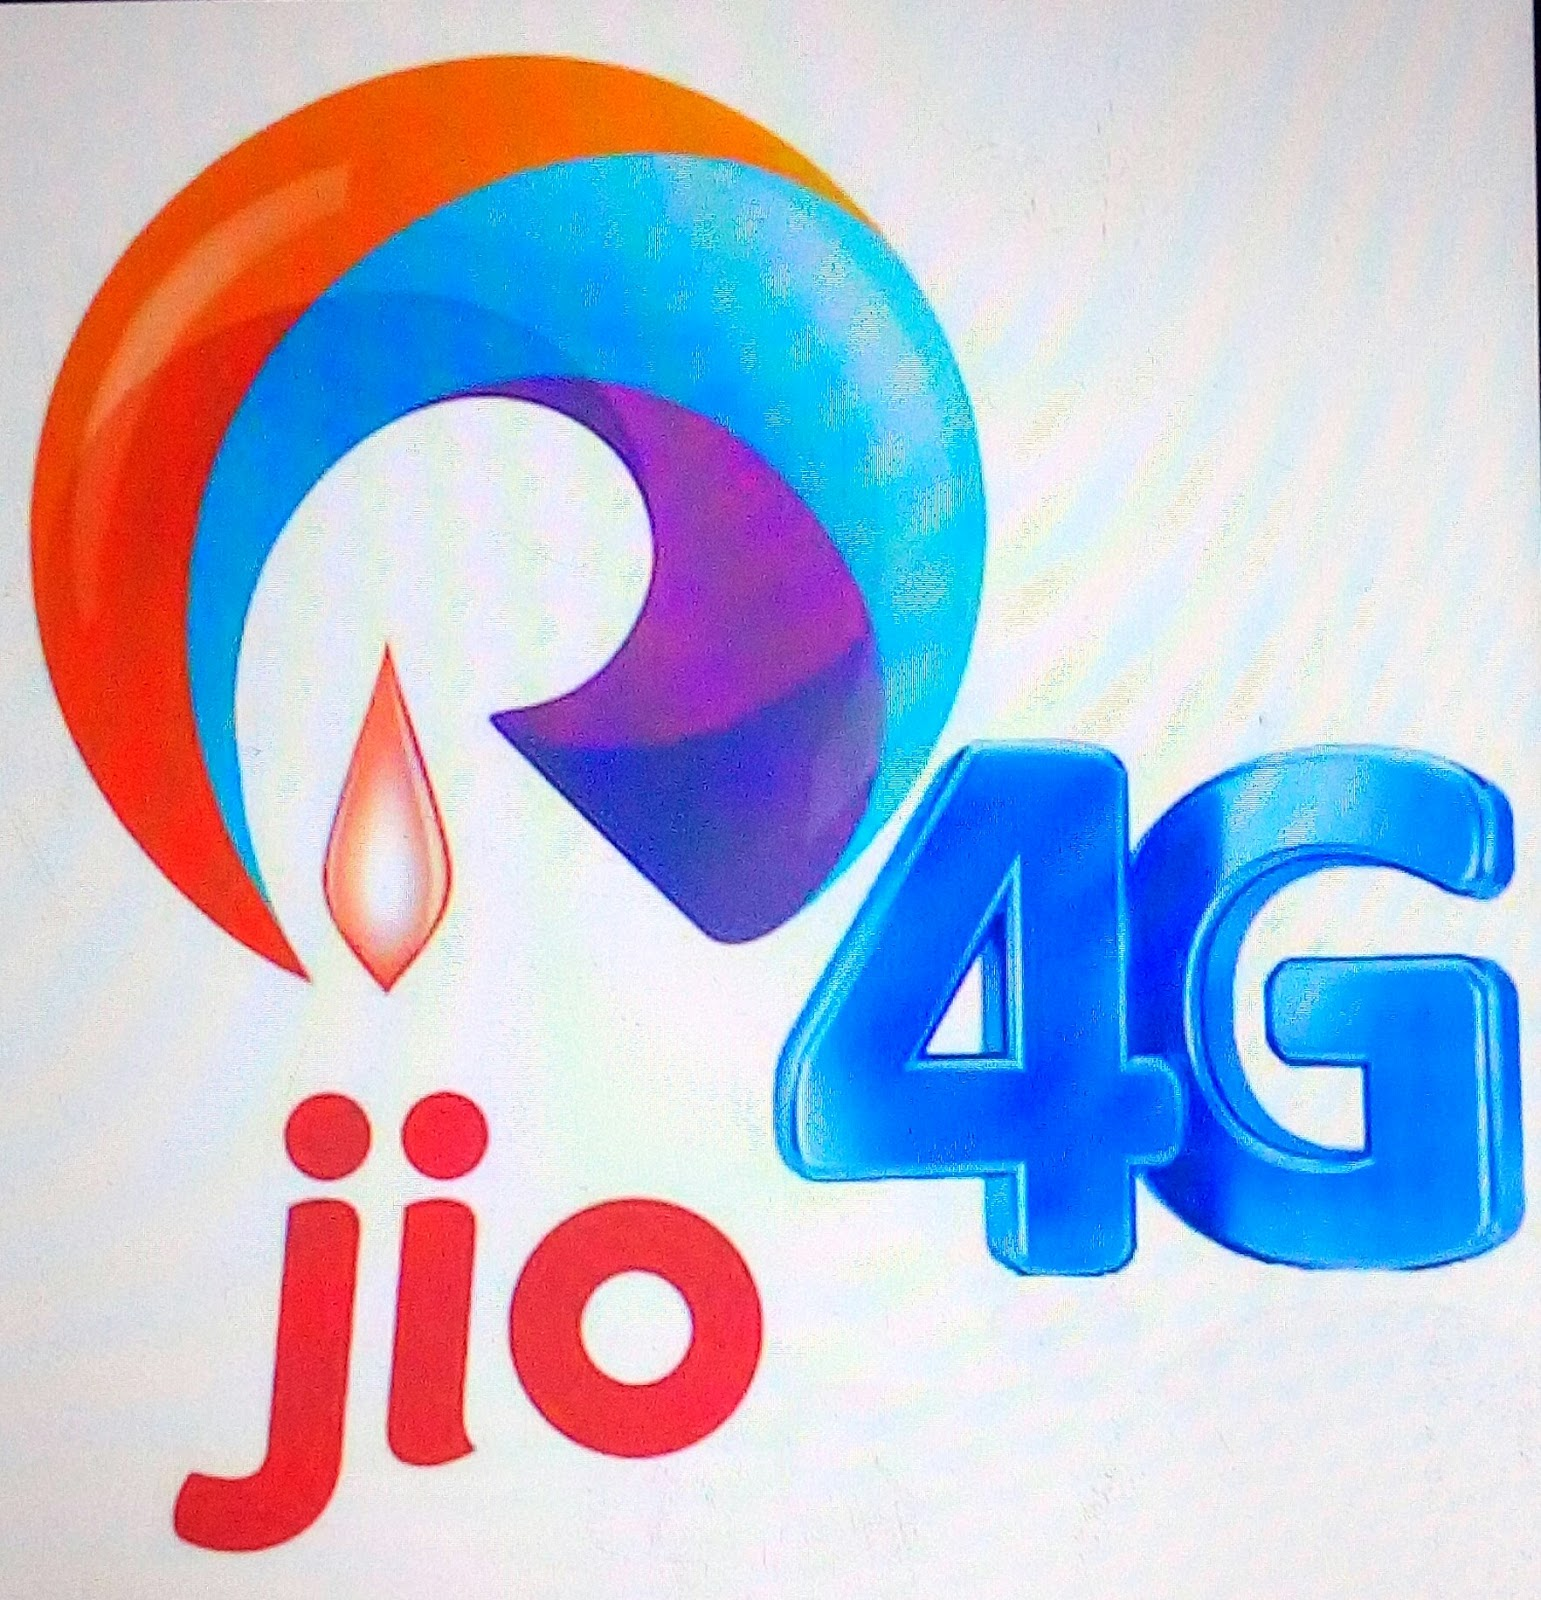 reliance jio extends validity 3 months to 1 year for lyf smartphone